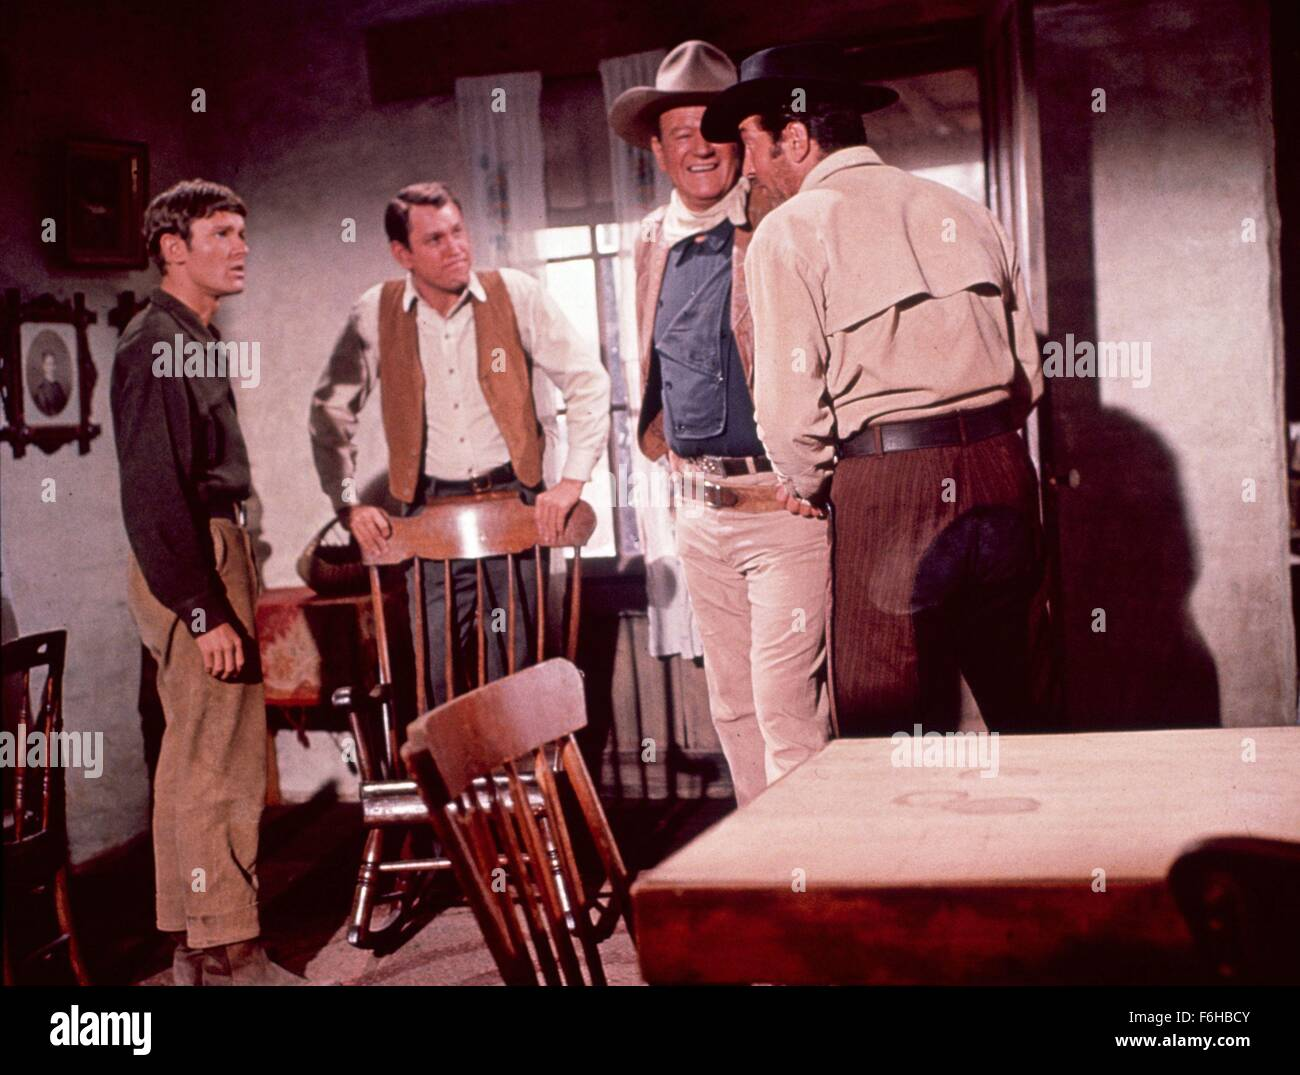 1965, Film Title: SONS OF KATIE ELDER, Director: HENRY HATHAWAY, Pictured: MICHAEL ANDERSON, HENRY HATHAWAY, EARL - Stock Image